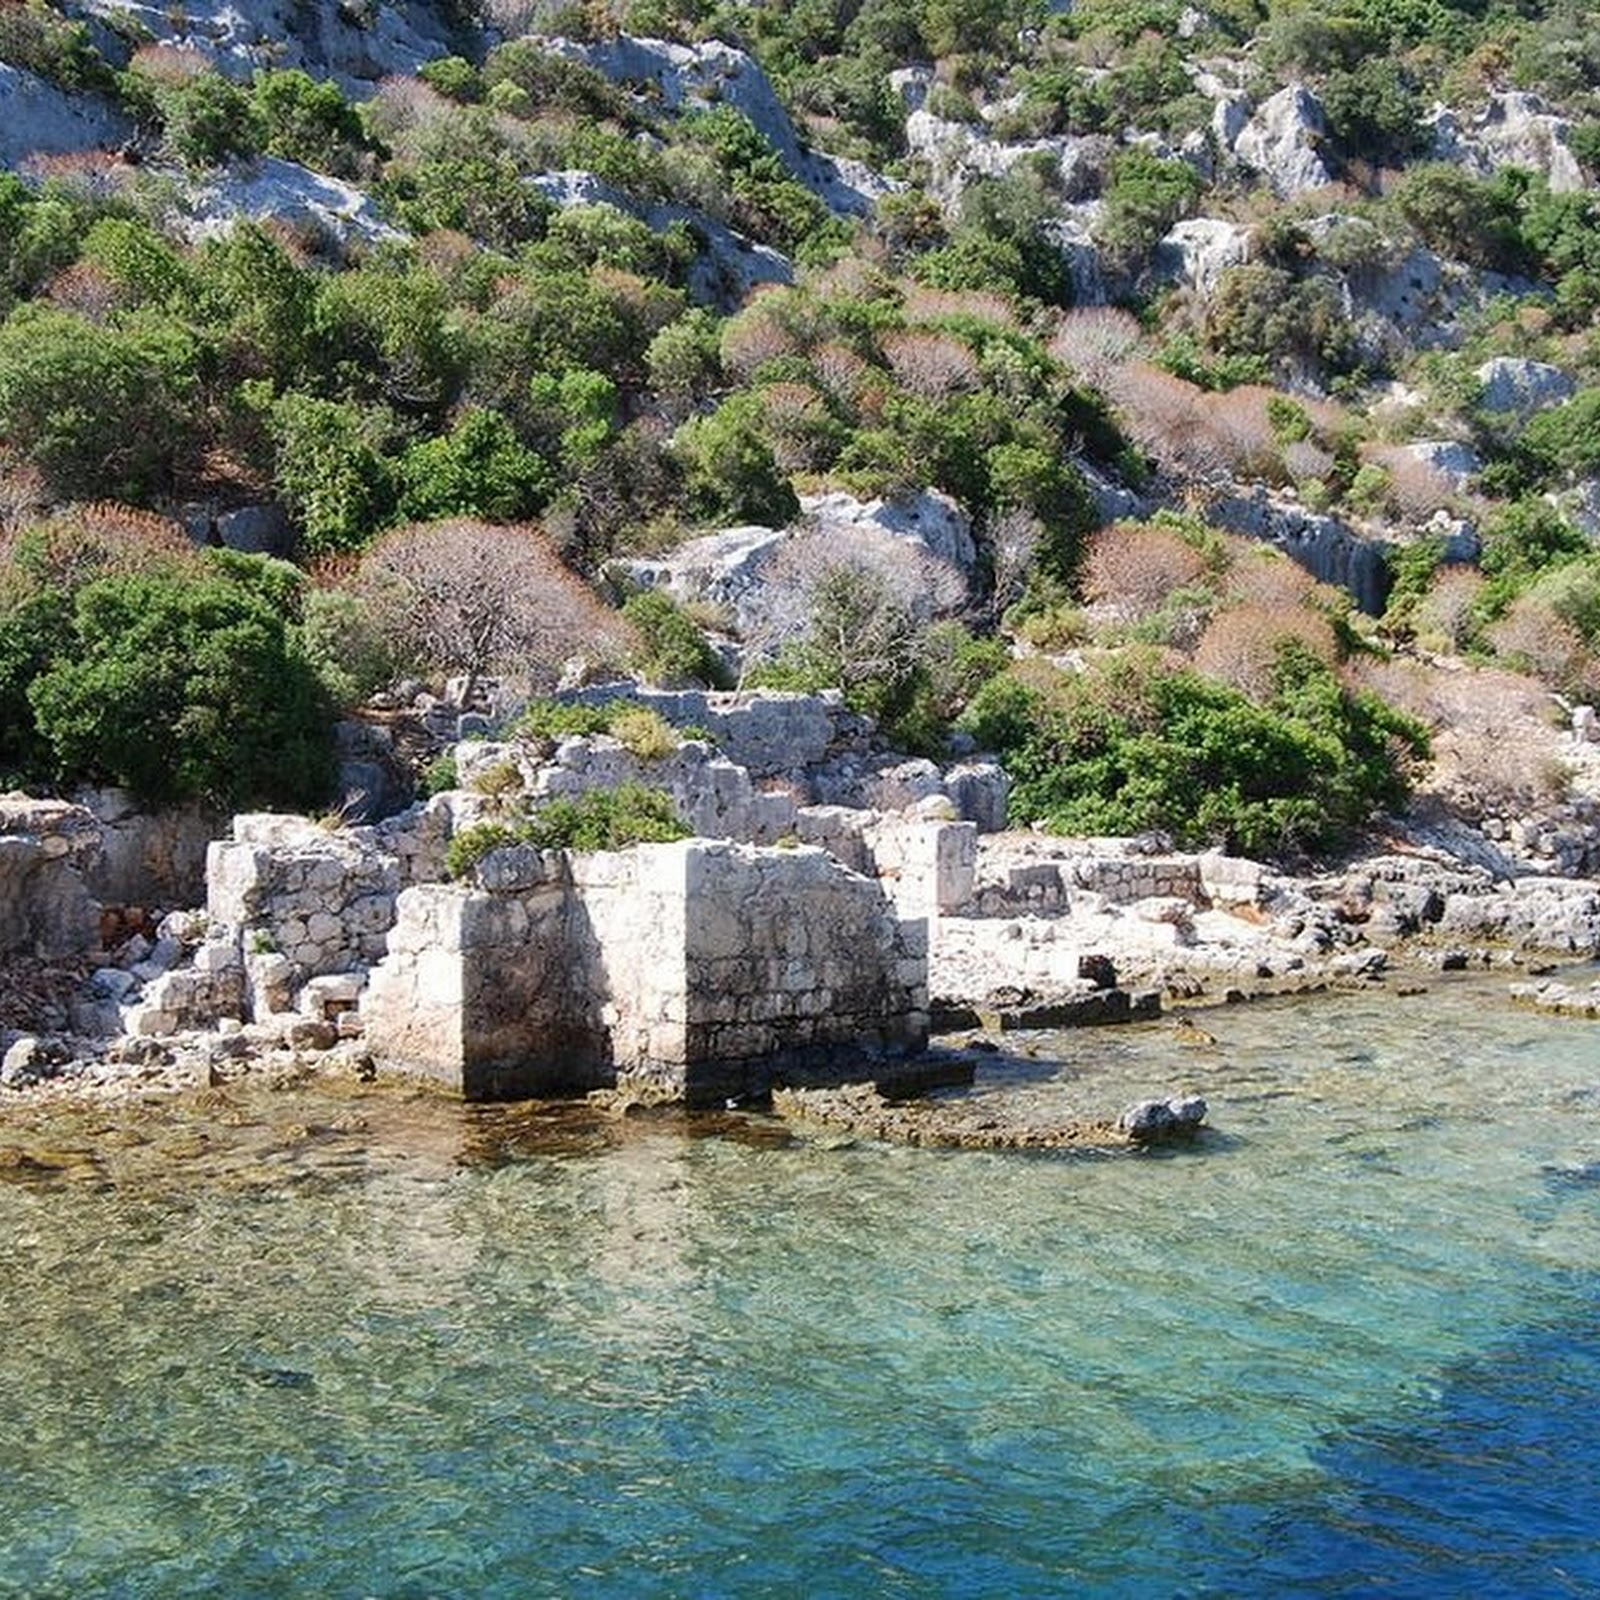 The Sunken City on Kekova Island